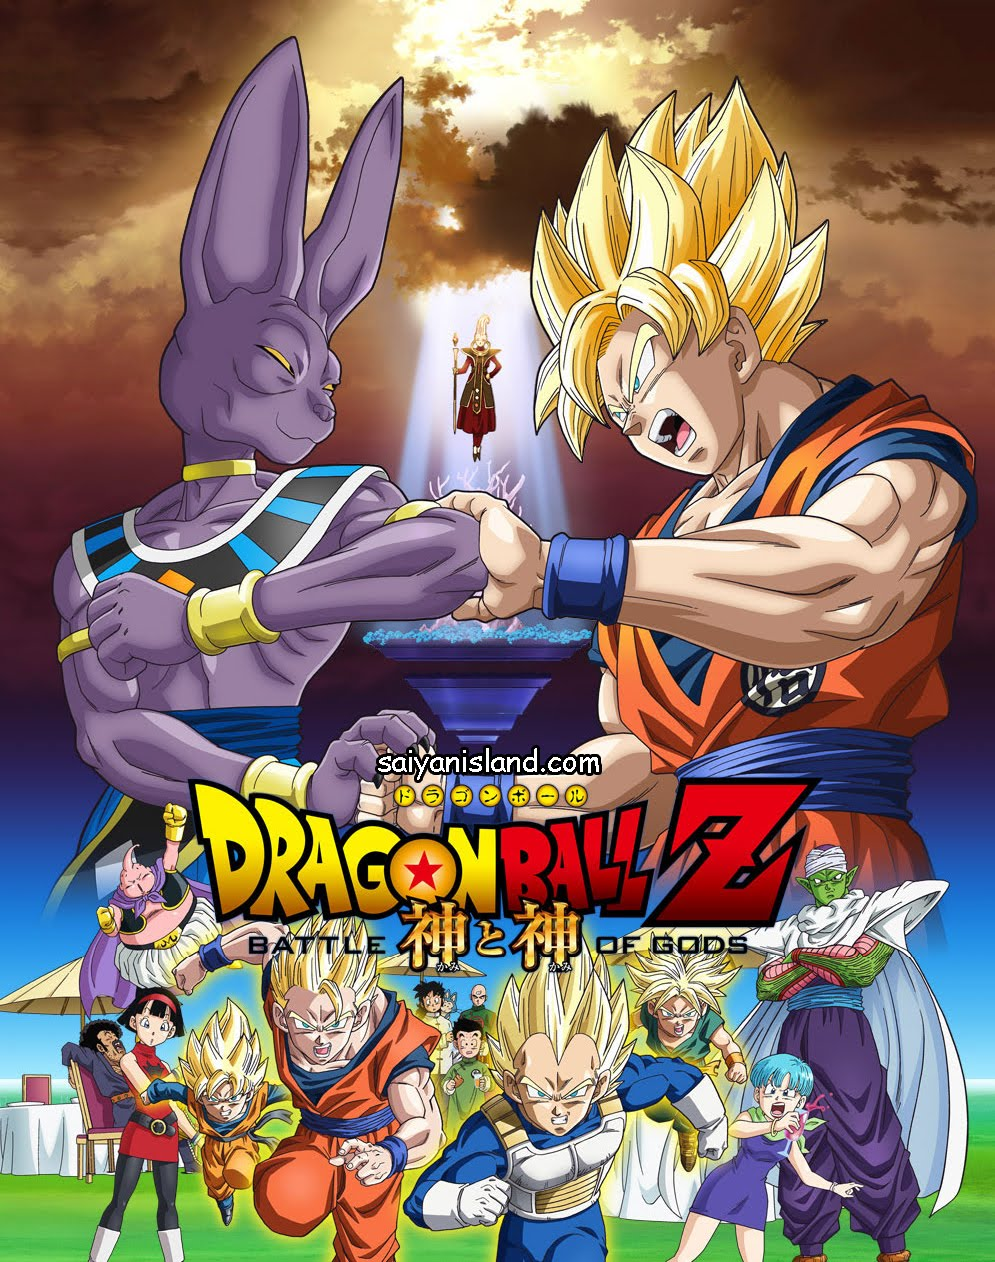 Dragon Ball Z: Battle of Gods movie